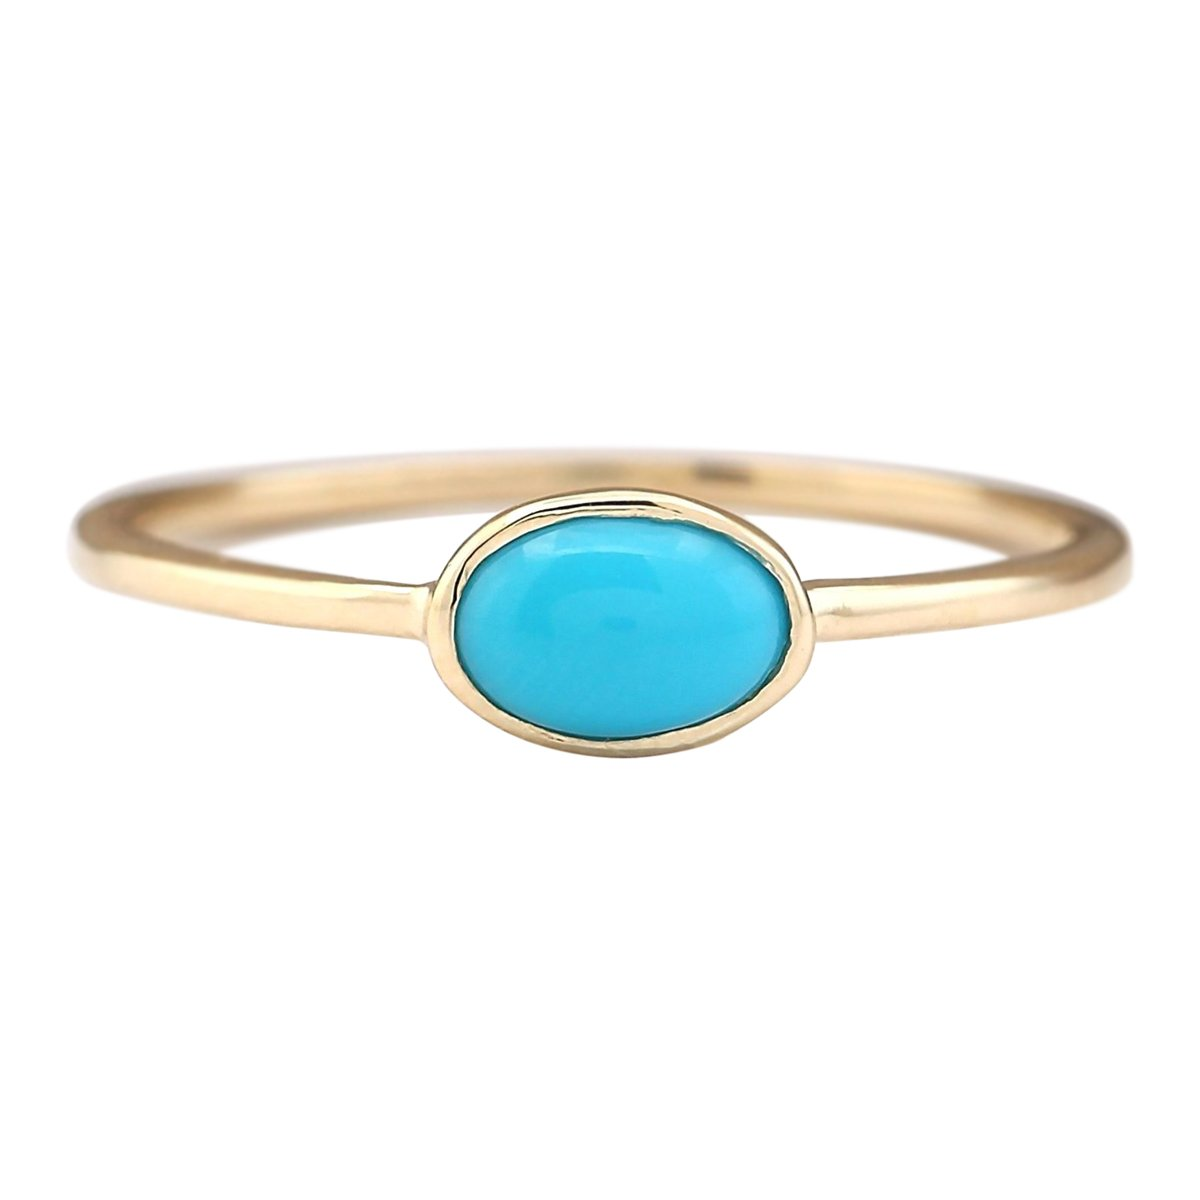 1 Carat Natural Blue Turquoise 14K Yellow Gold Solitaire Promise Ring for Women Exclusively Handcrafted in USA by Unknown